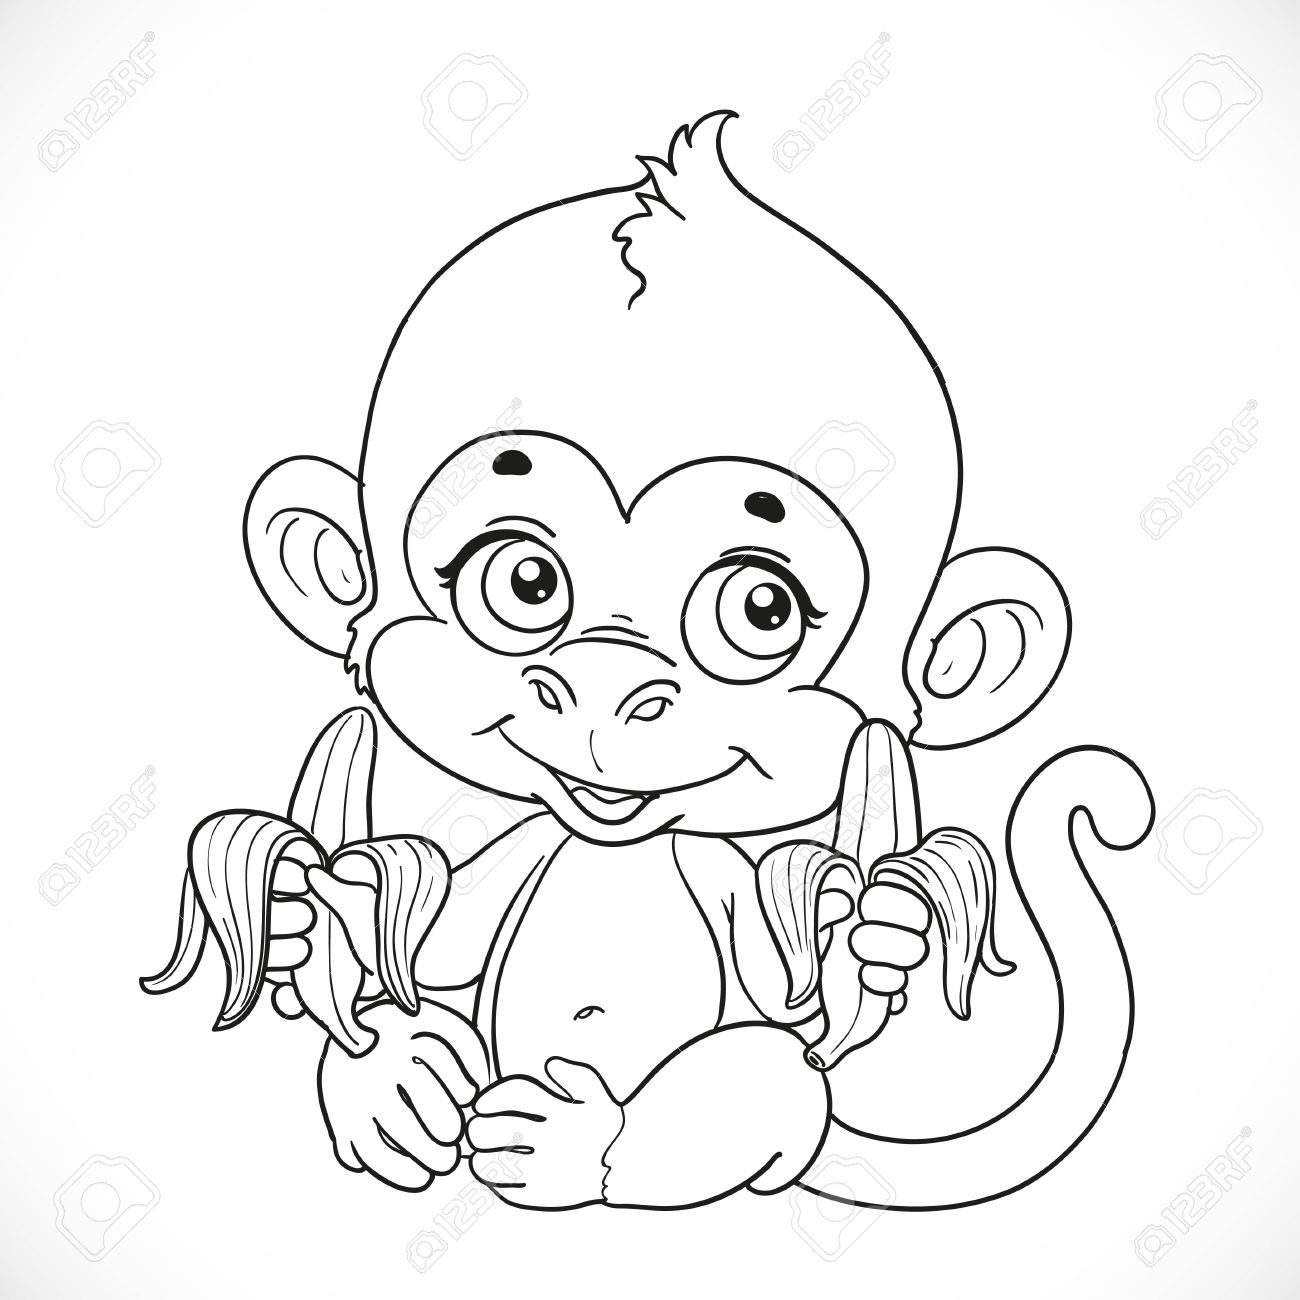 1300x1300 Cute Monkey Drawings Cute Baby Monkey Drawings Cute Baby Monkey